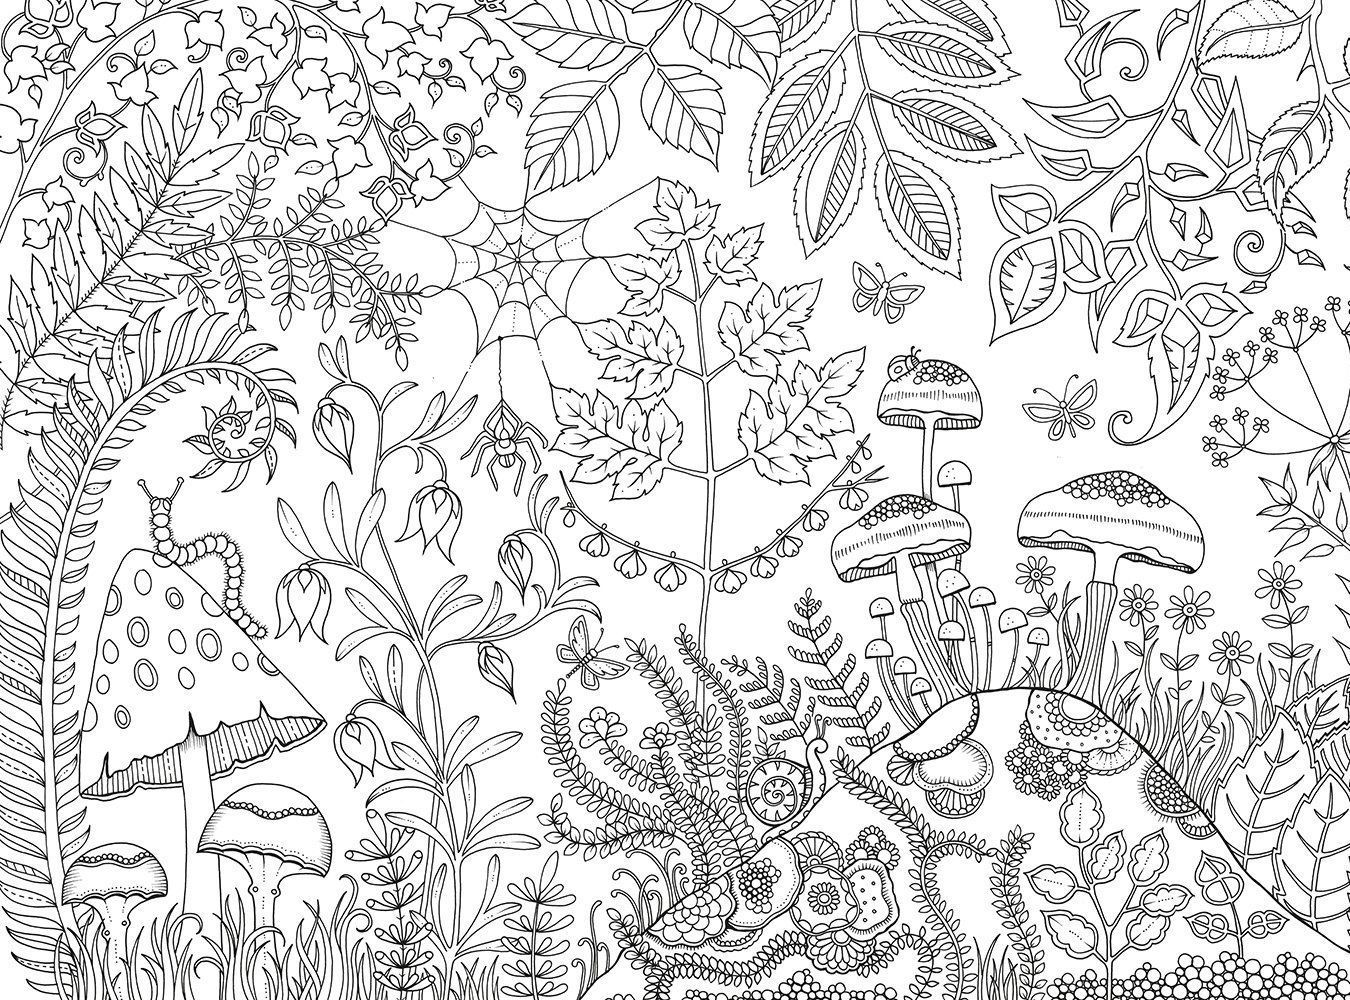 Johanna Basford Coloring Pages Fun Time A View In The Garden Gives You Priv Johanna Basford Coloring Basford Coloring Book Johanna Basford Coloring Book